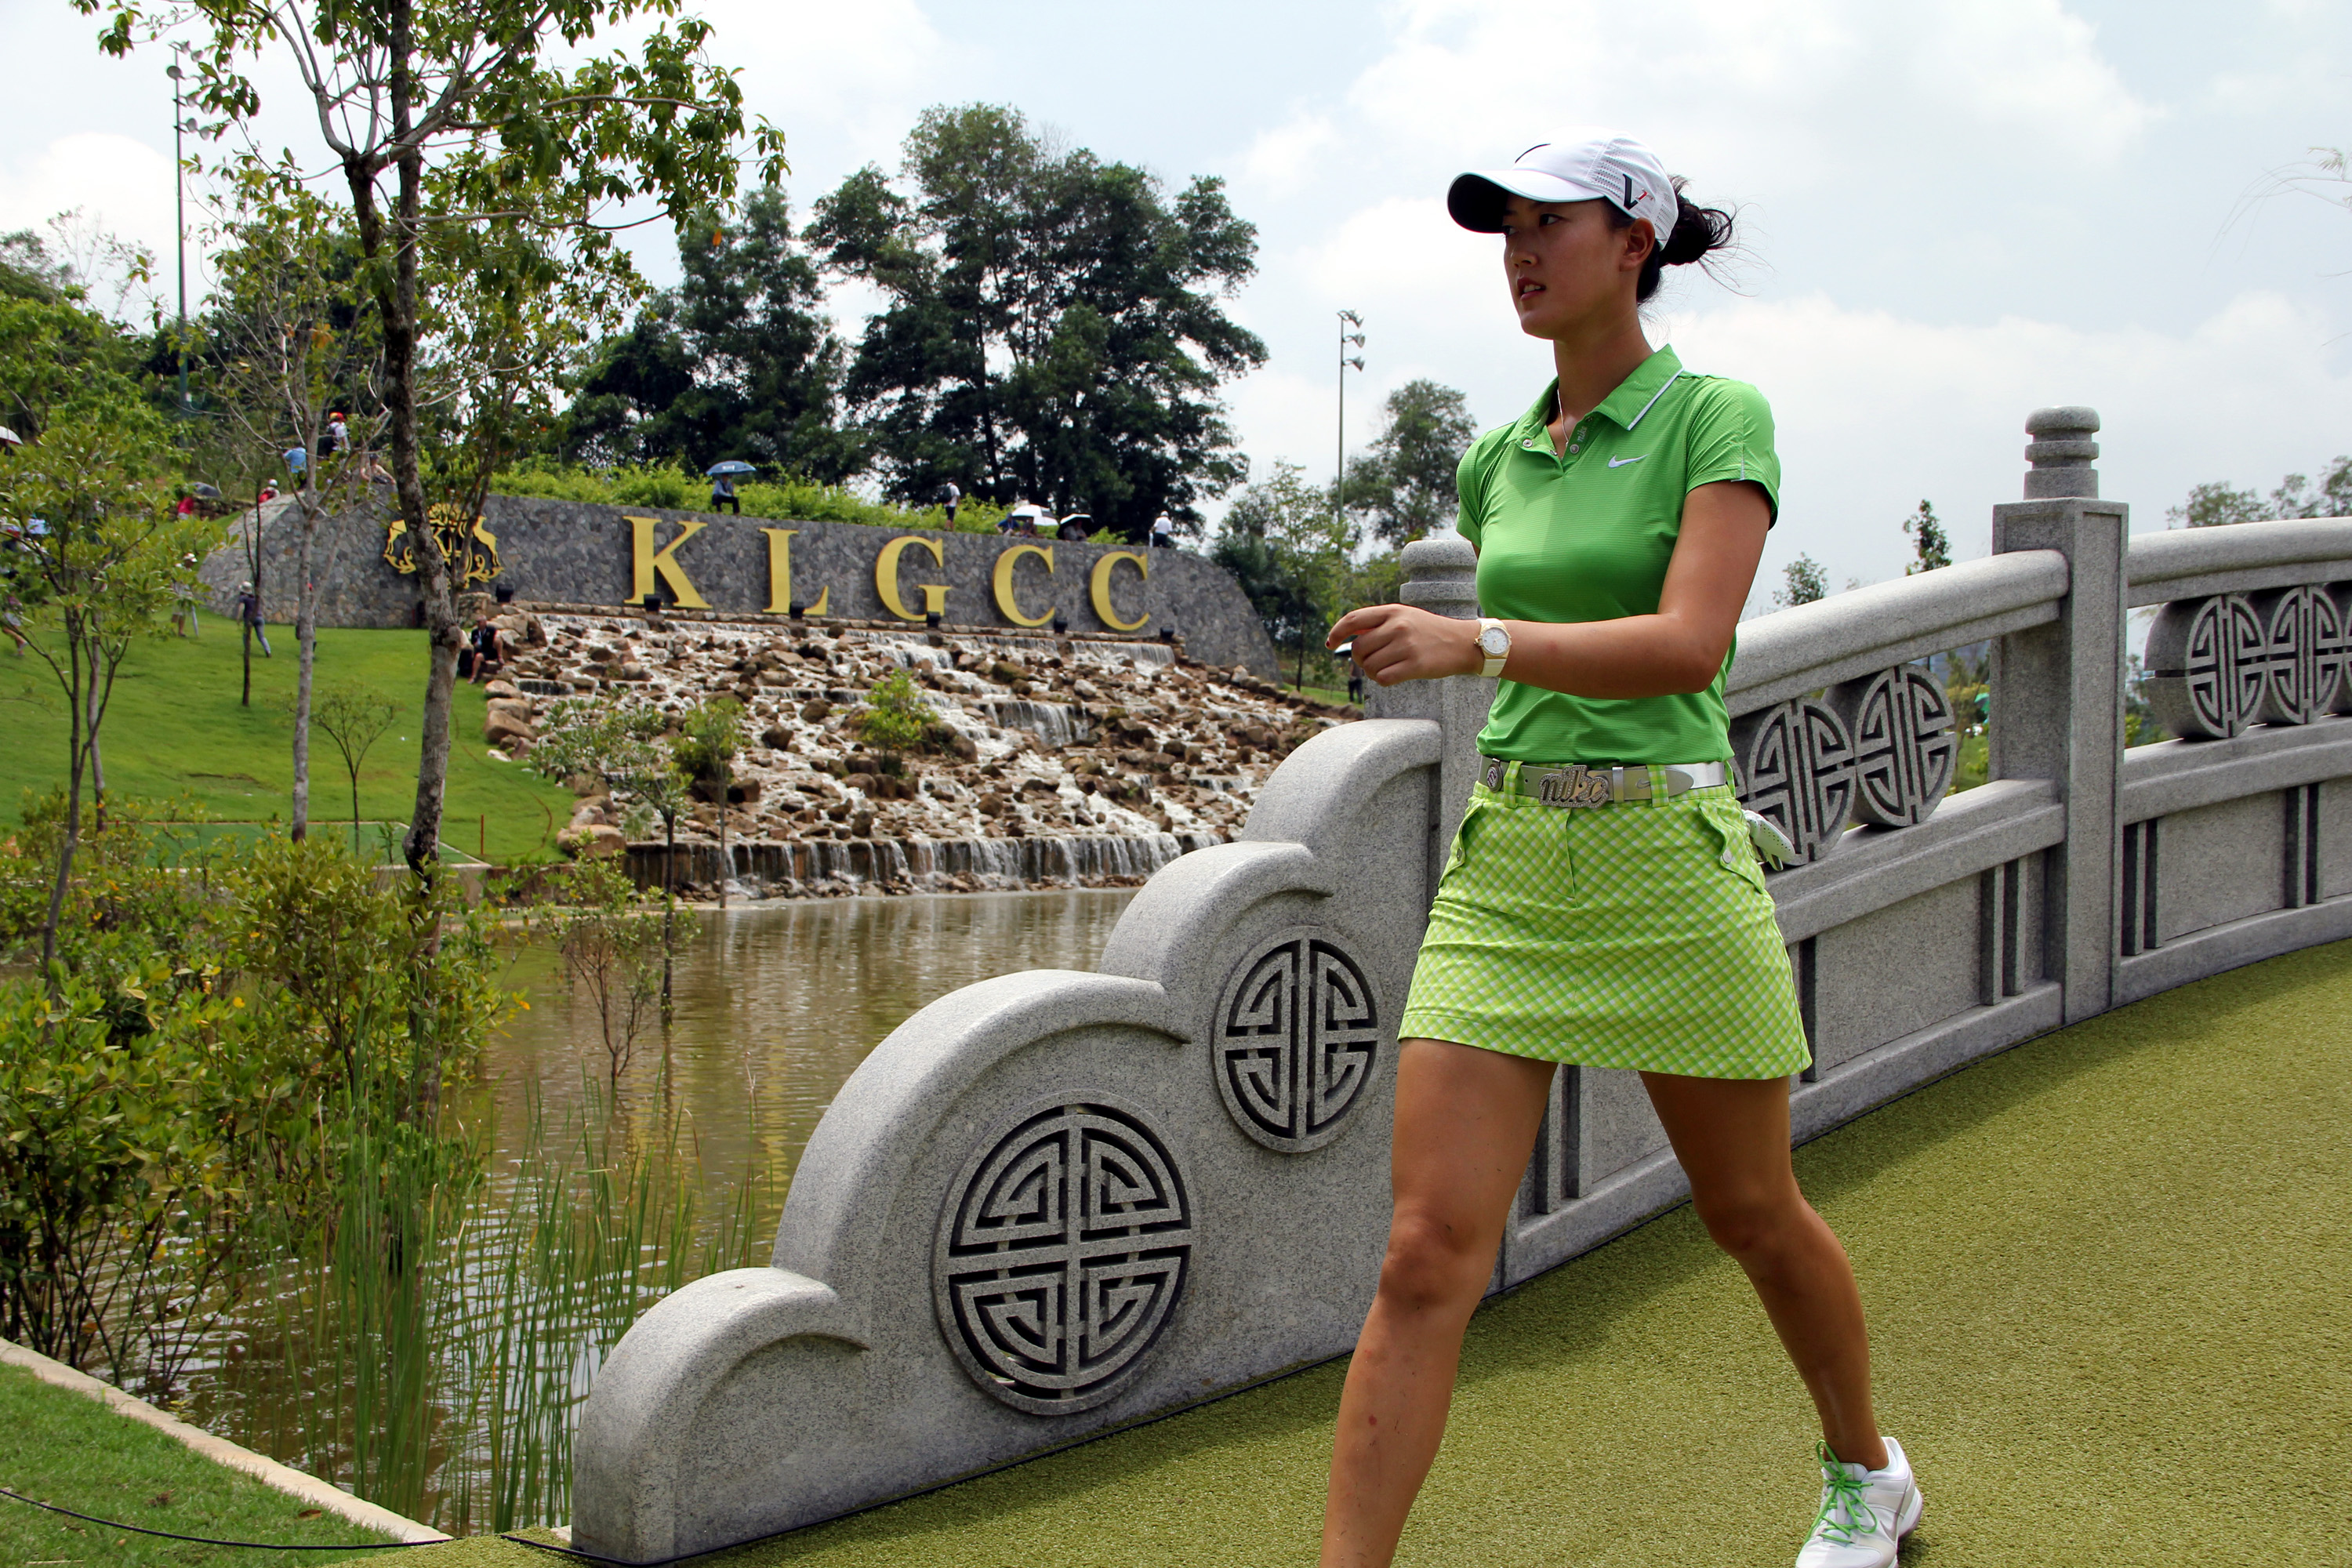 KUALA LUMPUR, MALAYSIA - OCTOBER 24:  Michelle Wie of USA walks across the bridge on the 15th hole during the Final Round of the Sime Darby LPGA on October 24, 2010 at the Kuala Lumpur Golf and Country Club in Kuala Lumpur, Malaysia. (Photo by Stanley Cho